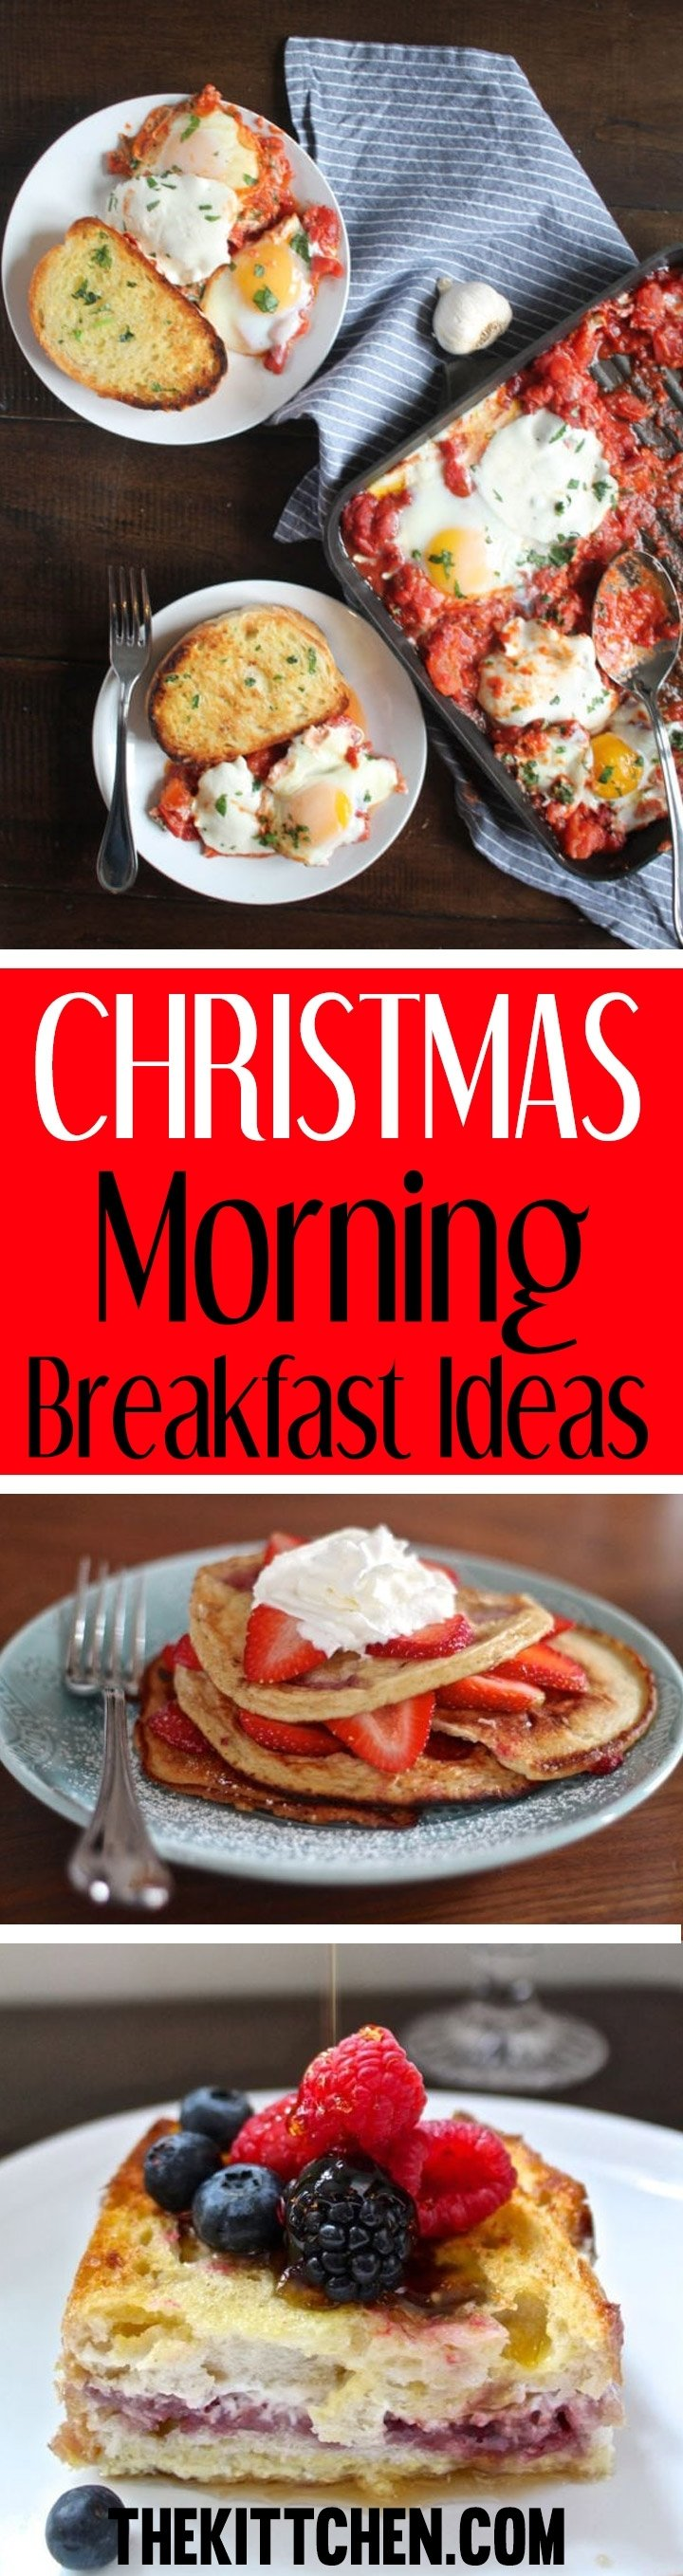 10 Perfect Breakfast Ideas For Christmas Morning christmas morning breakfasts sweet and savory breakfast ideas 2021